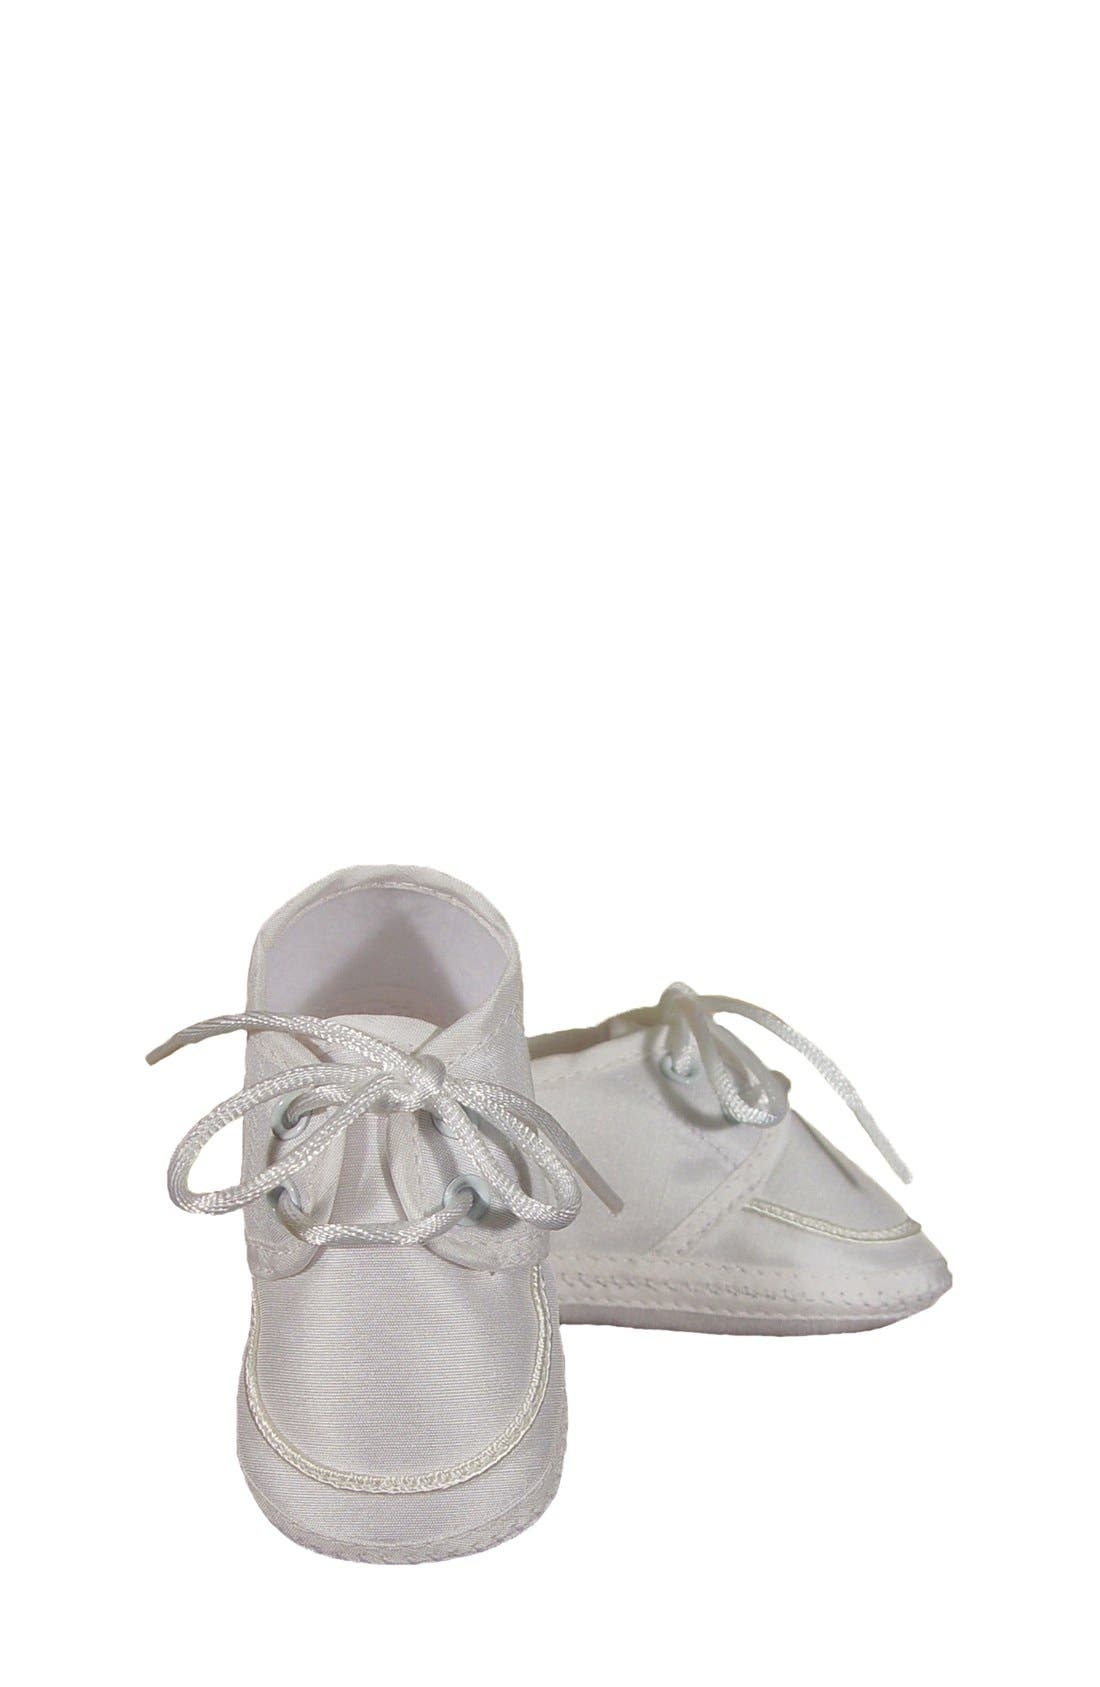 Silk Shoe,                             Main thumbnail 1, color,                             WHITE